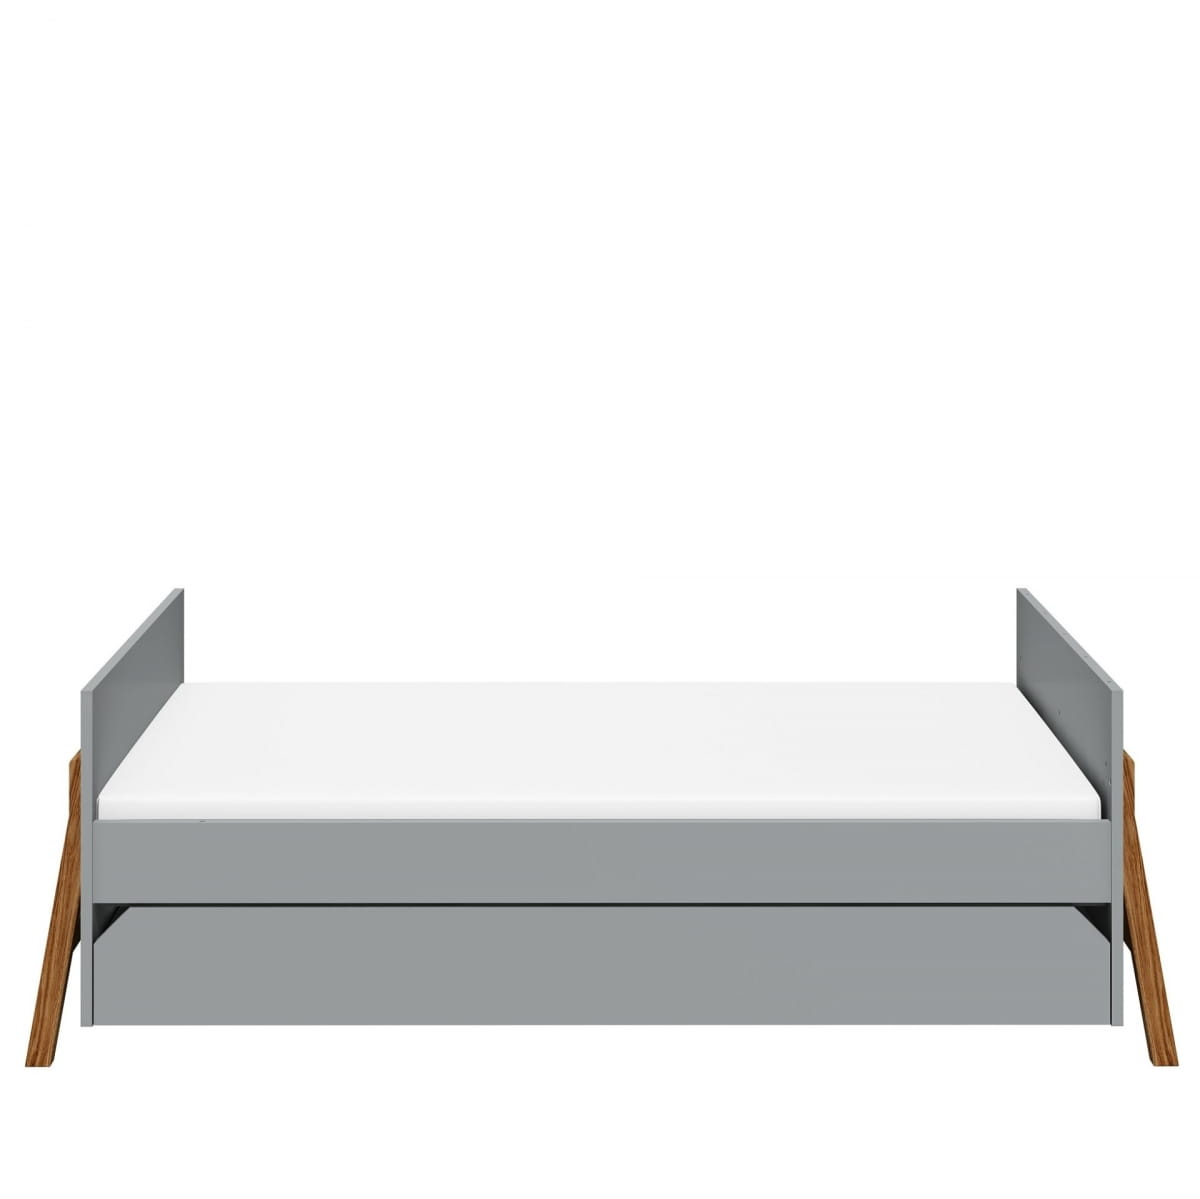 Lotta_gray_junior_bed_70x140_01.jpg